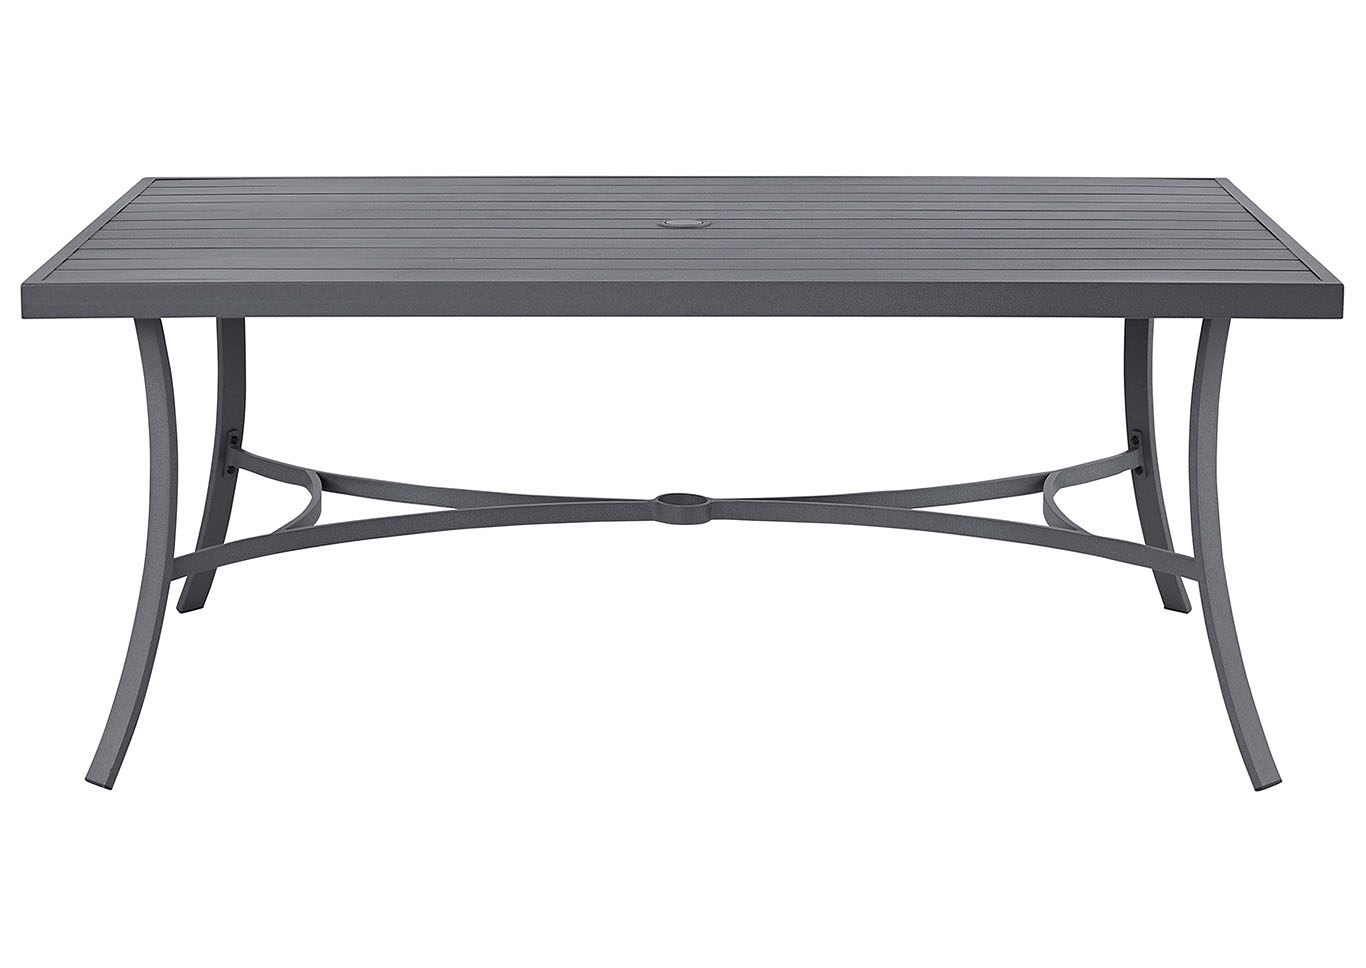 Donnalee Bay Dark Gray Dining Table w/Umbrella Option,Outdoor By Ashley